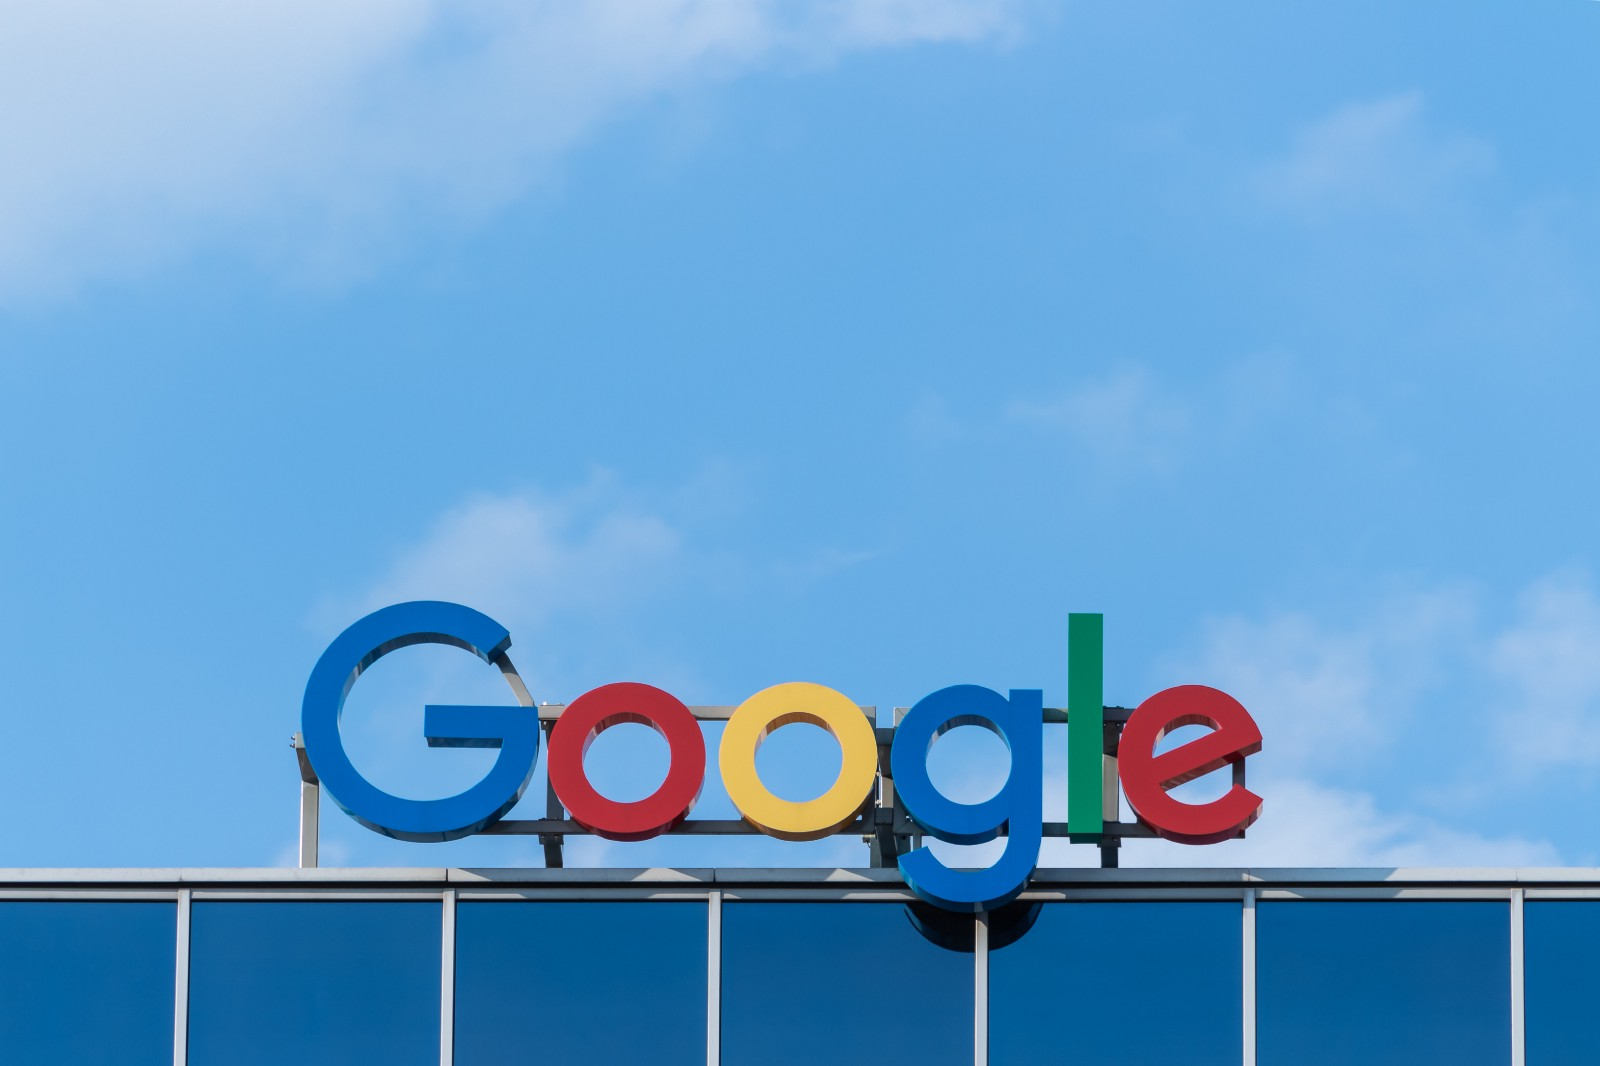 /what-the-heck-google-part-4-cff837952d7 feature image